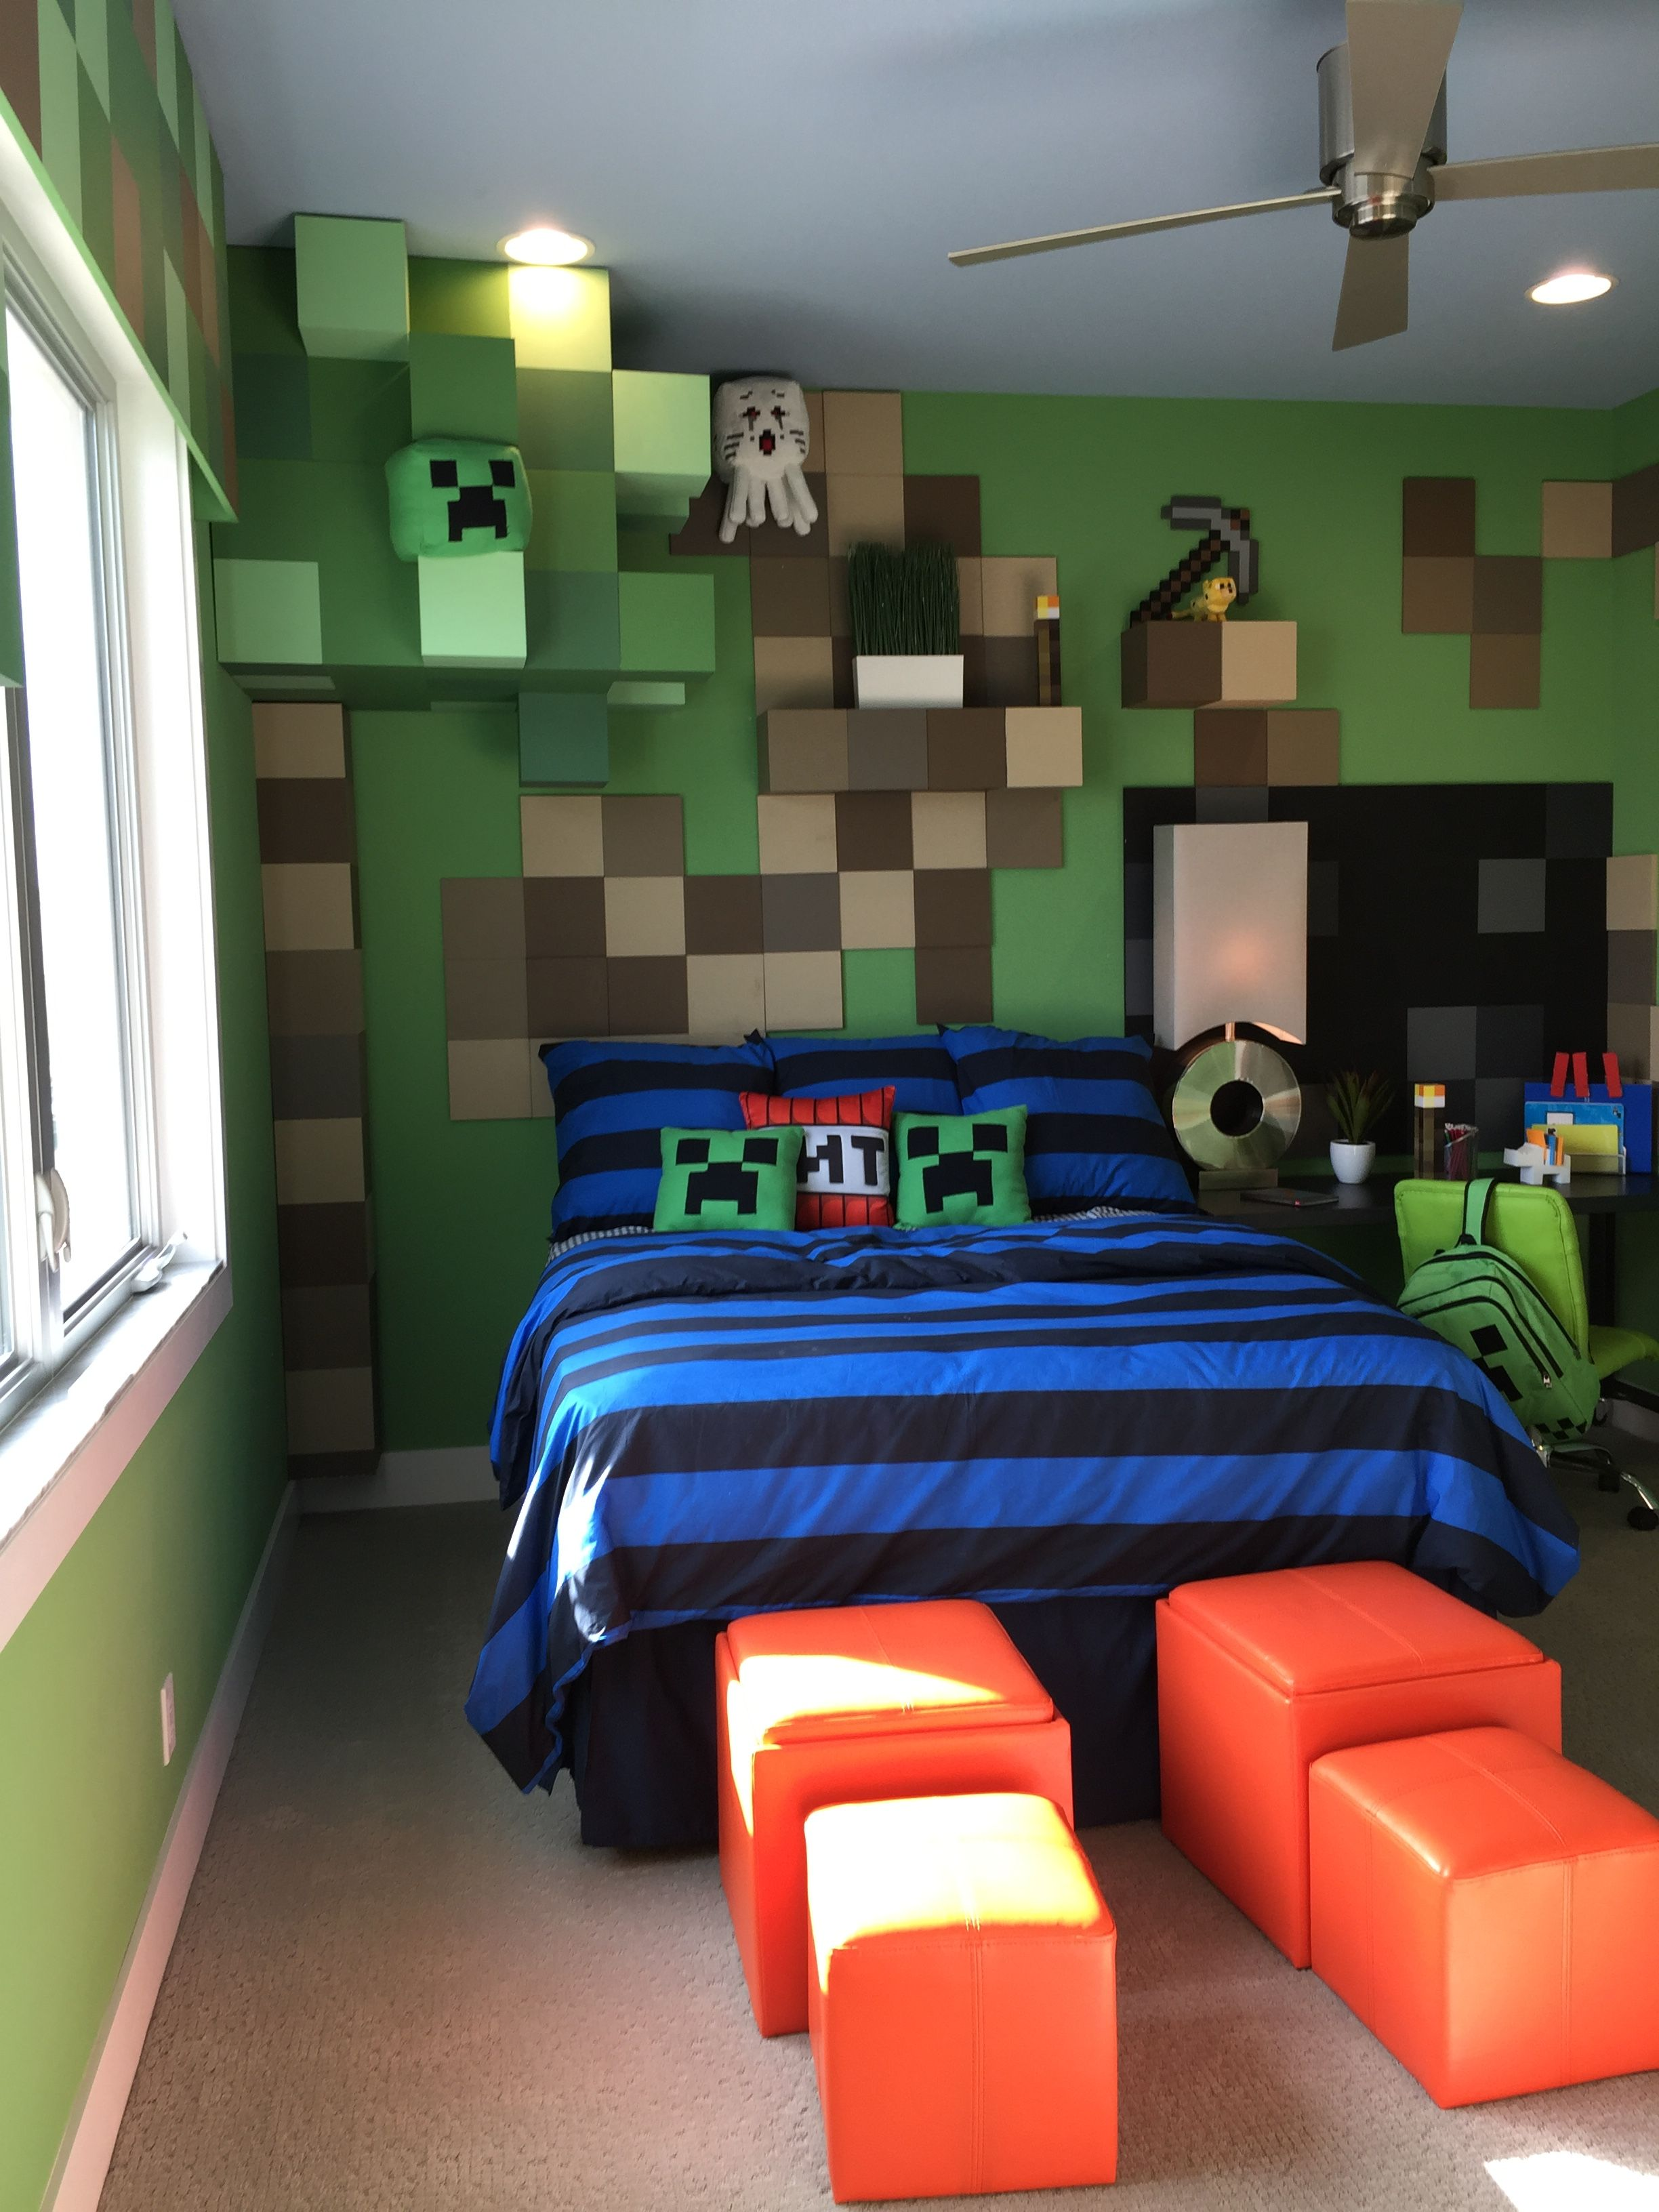 Great Minecraft Styled Room Cool Bedrooms For Boys Minecraft Bedroom Decor Boy Bedroom Design